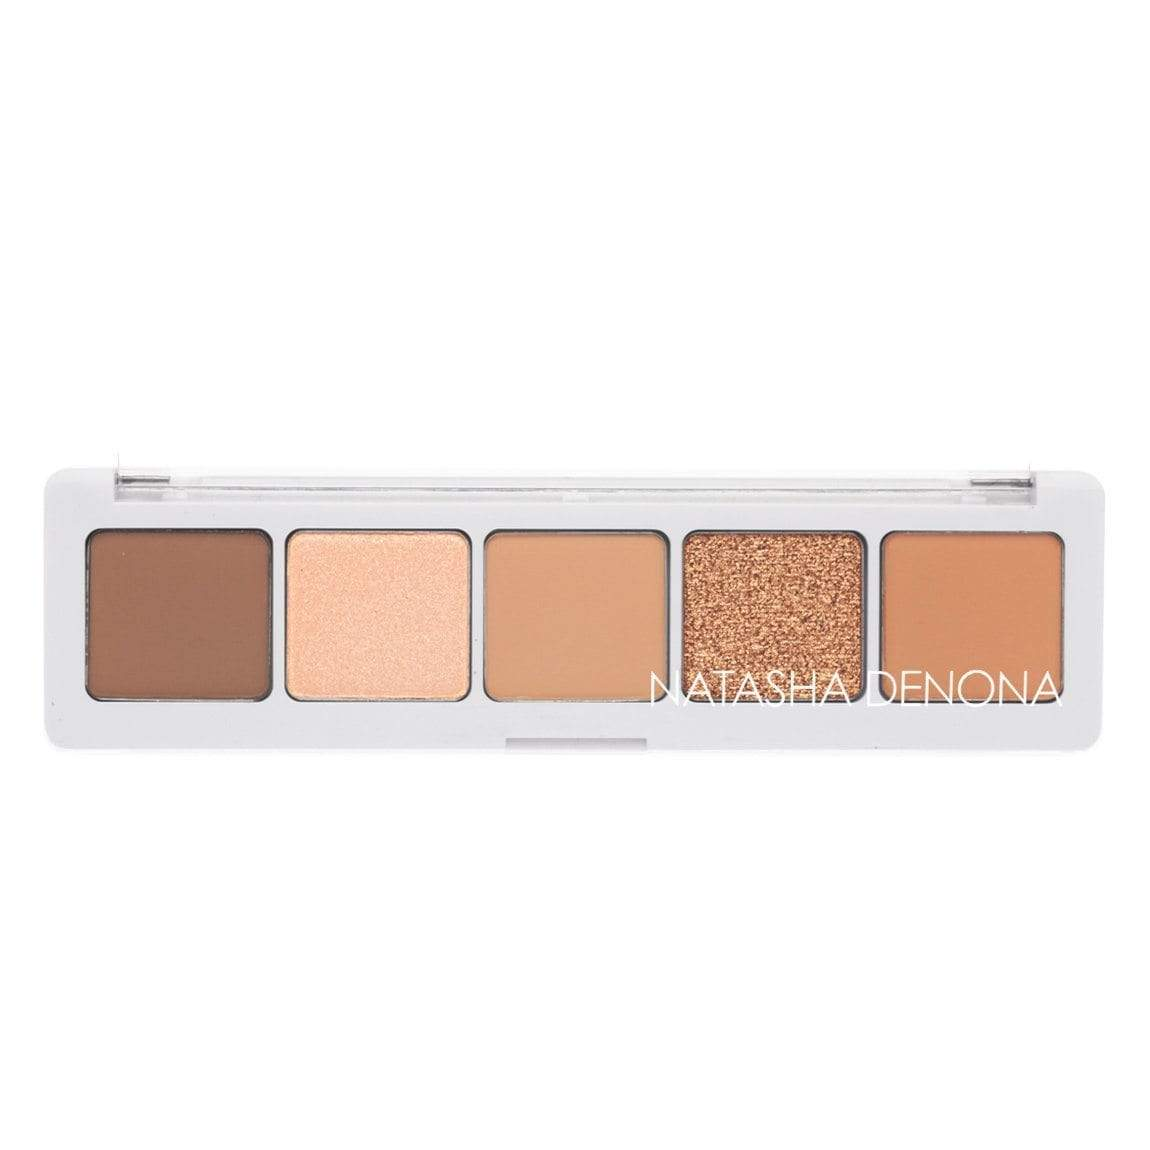 NATASHA DENONA Camel Palette, eyeshadow palette, London Loves Beauty